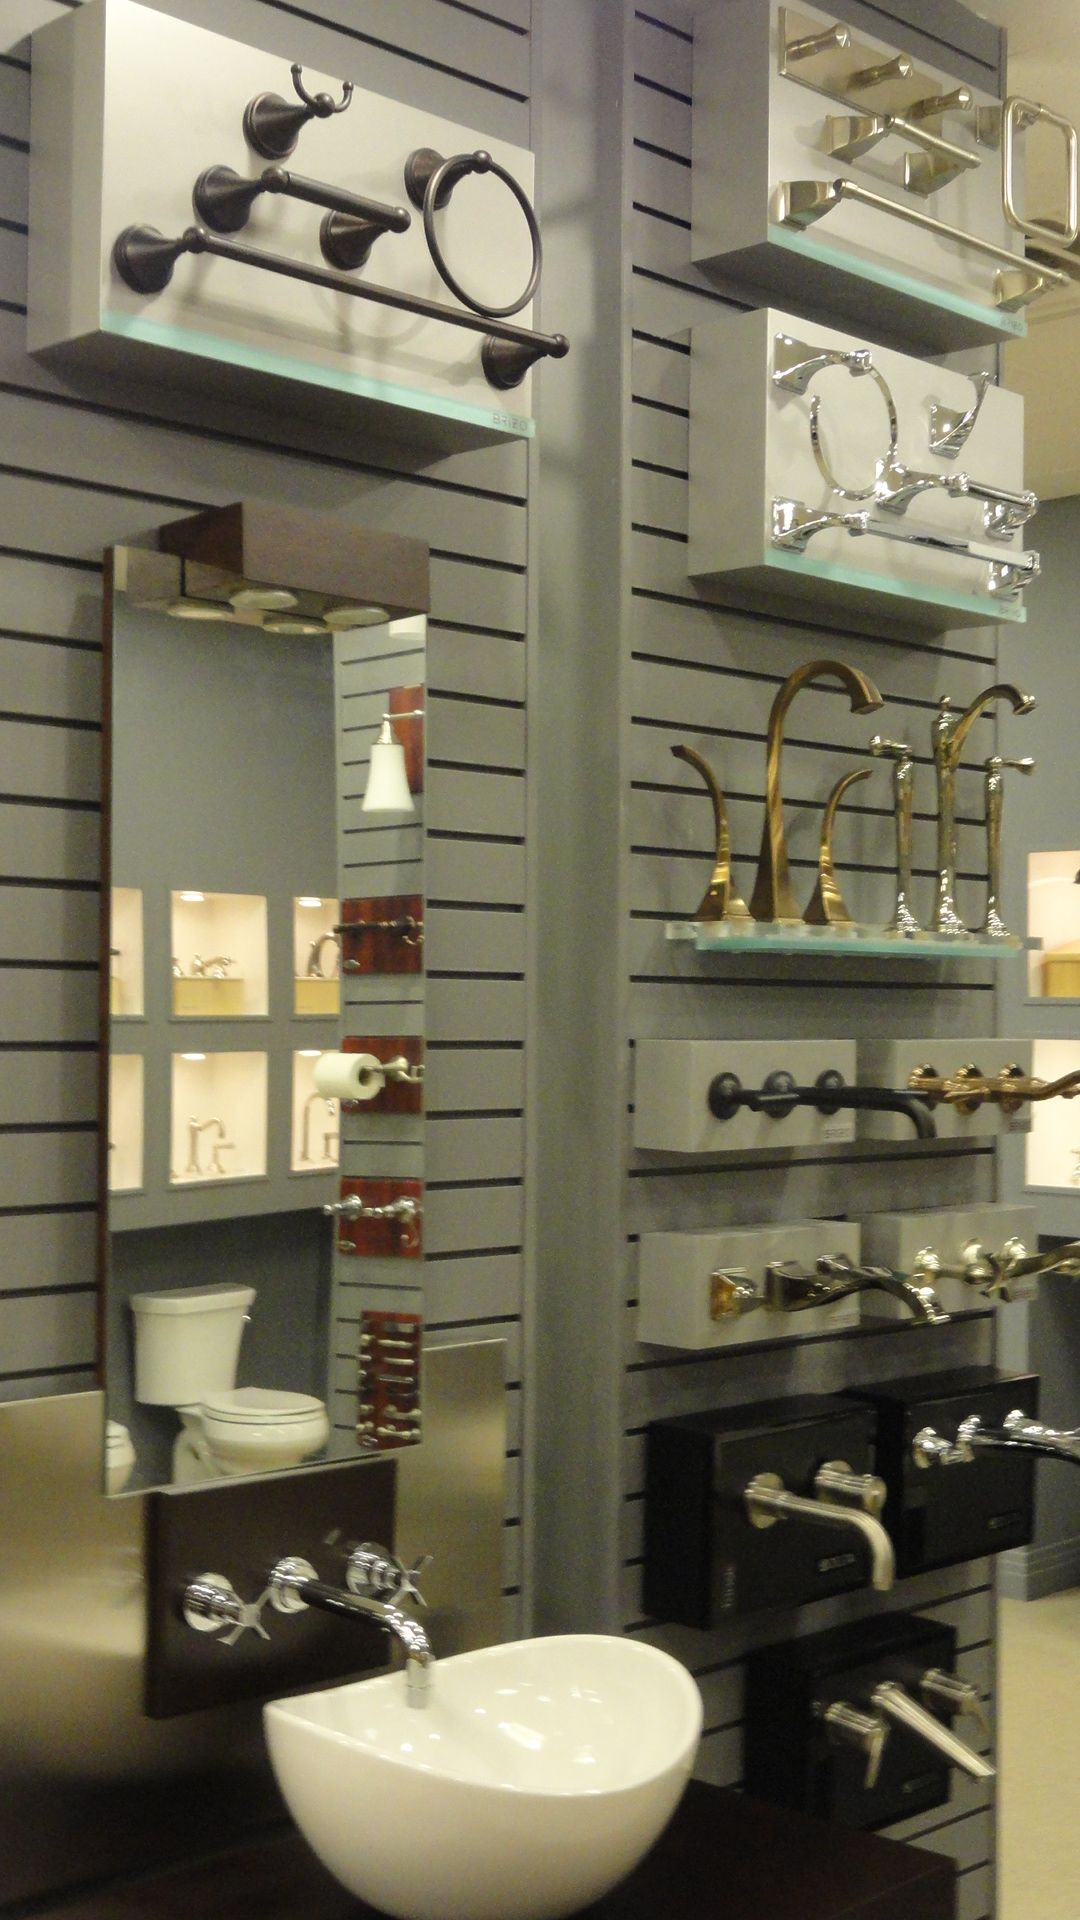 Bathroom Showrooms Denver brizo faucets, showers, bathroom faucets and accessories in our